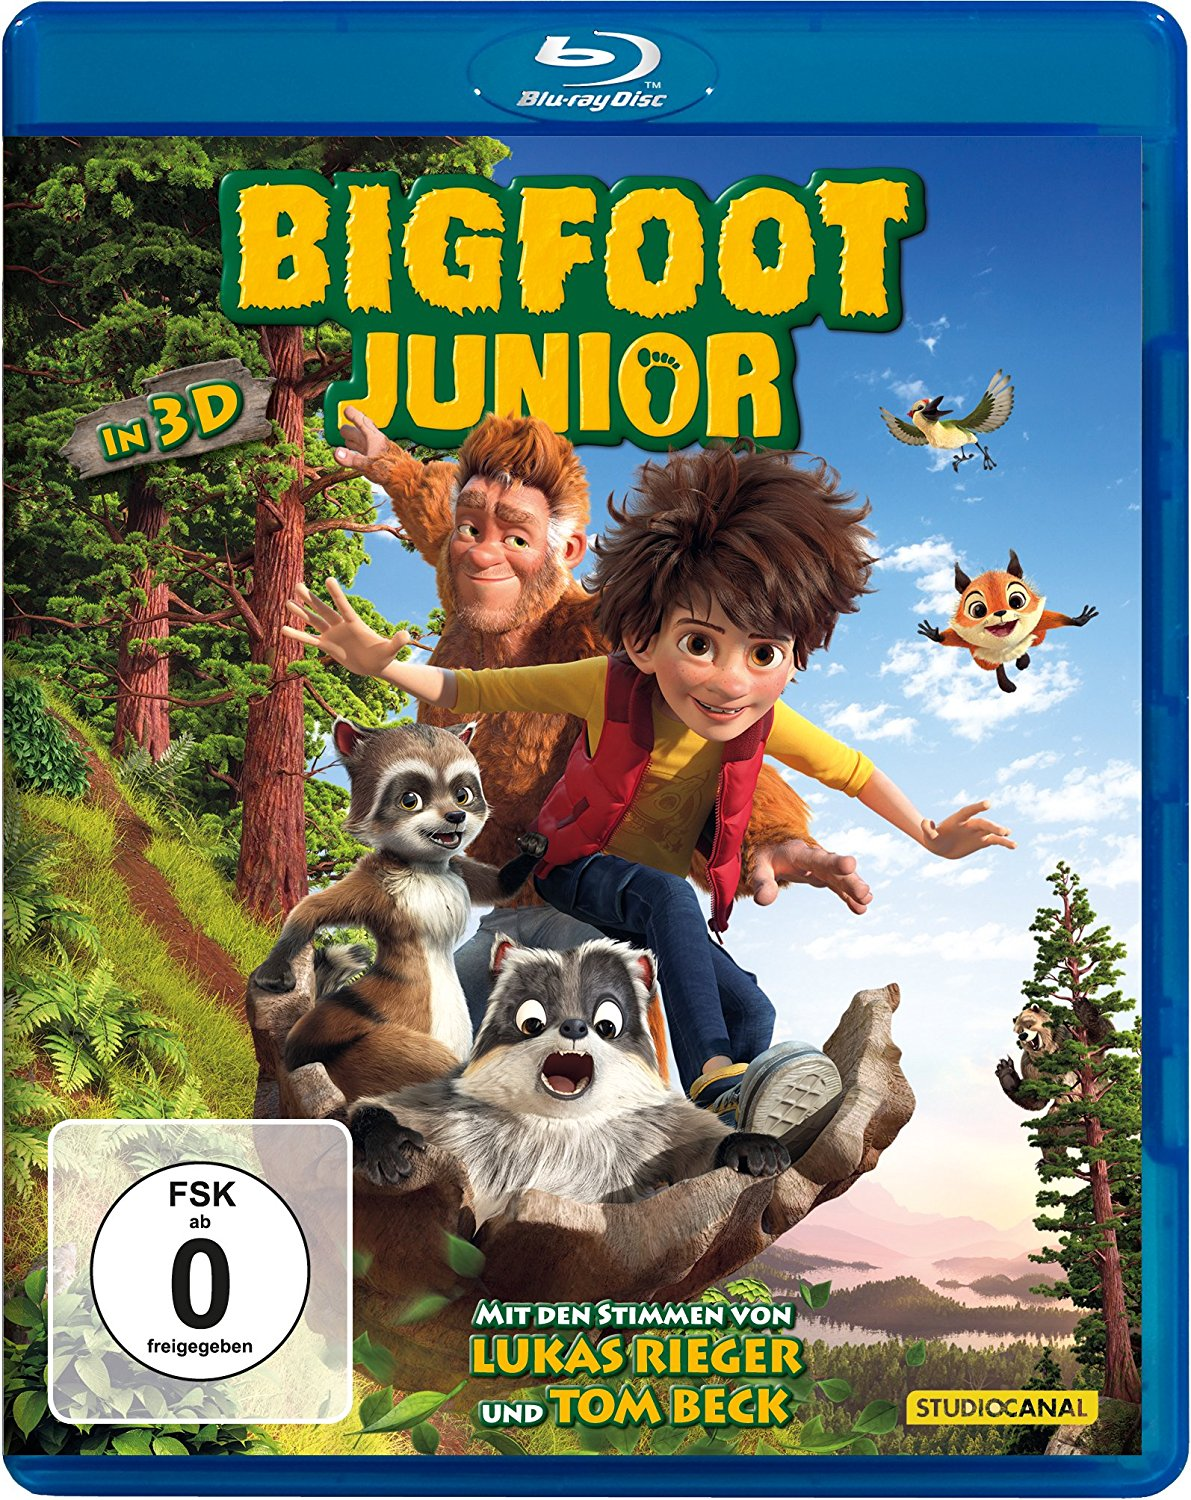 Bigfoot Junior 3D 2017 German 1080p BluRay x264-Checkmate